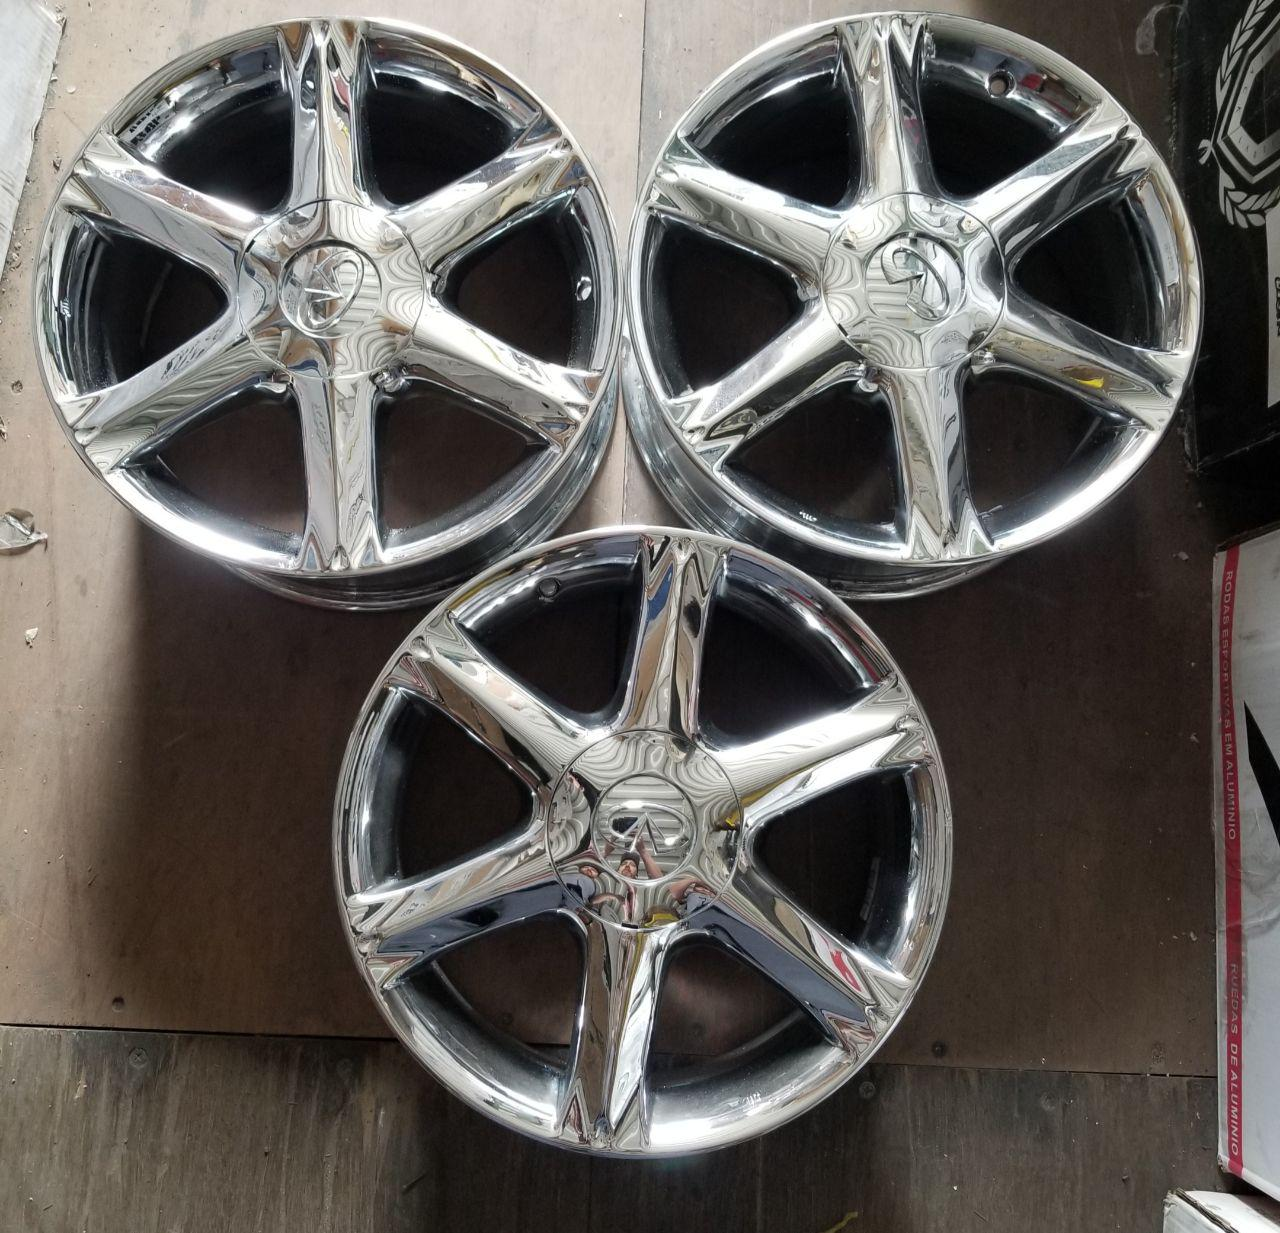 - OEM WHEELS - 2002-2004 INFINITI Q45 17x7.5 6 SPOKE Hollander #73663 /  USED